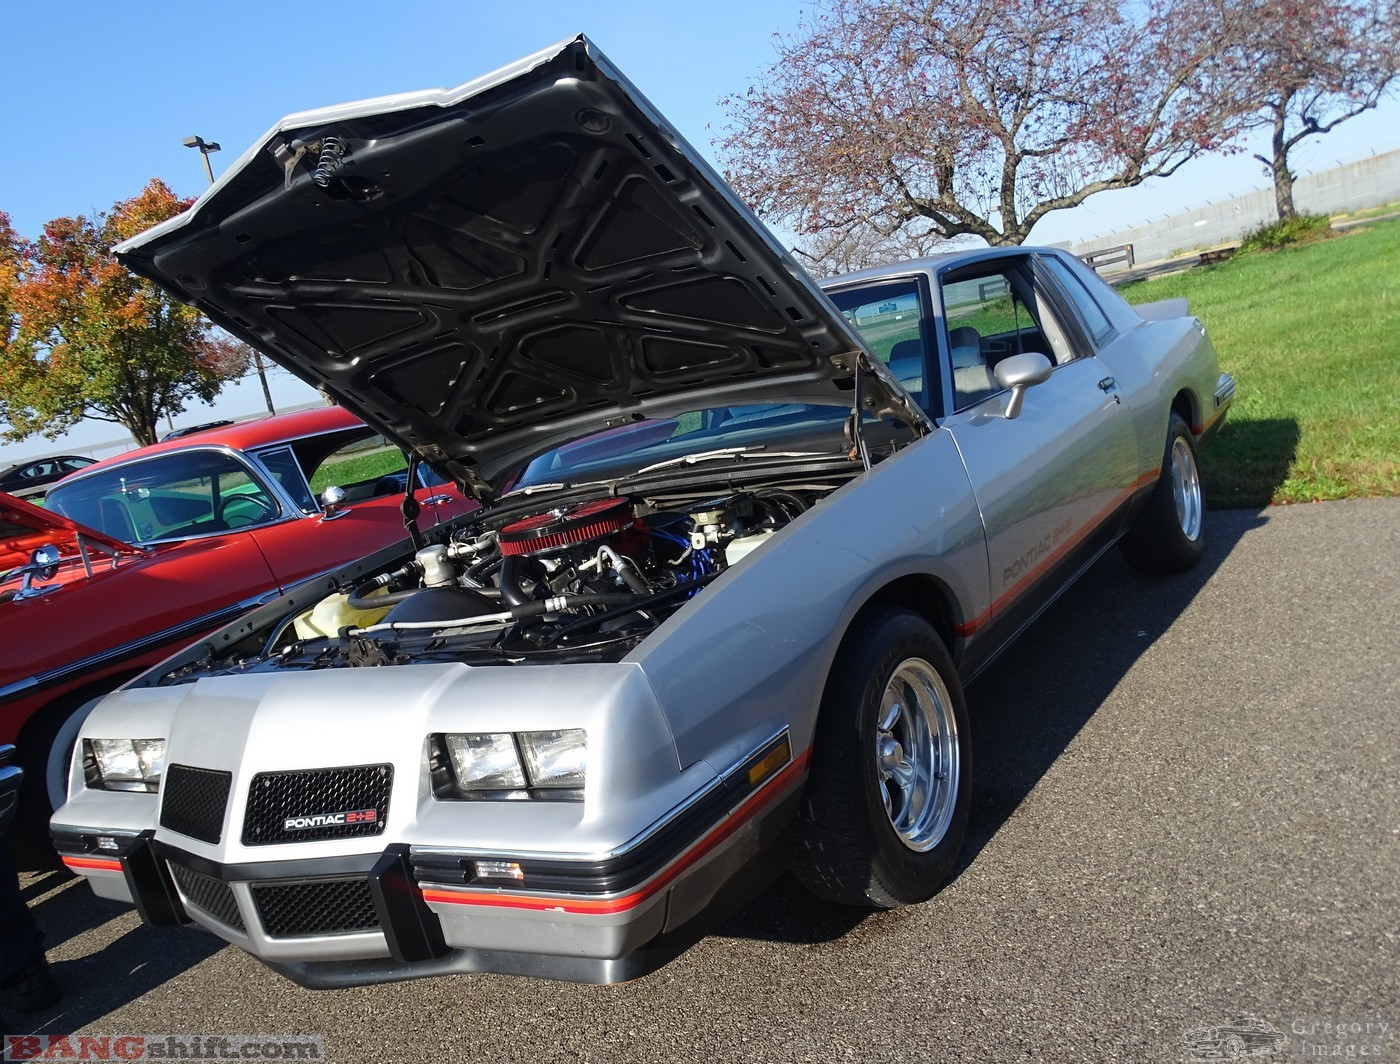 Event Photo Coverage: Cars & Coffee at the Bluegrass Stockyards – No Boring Junk!